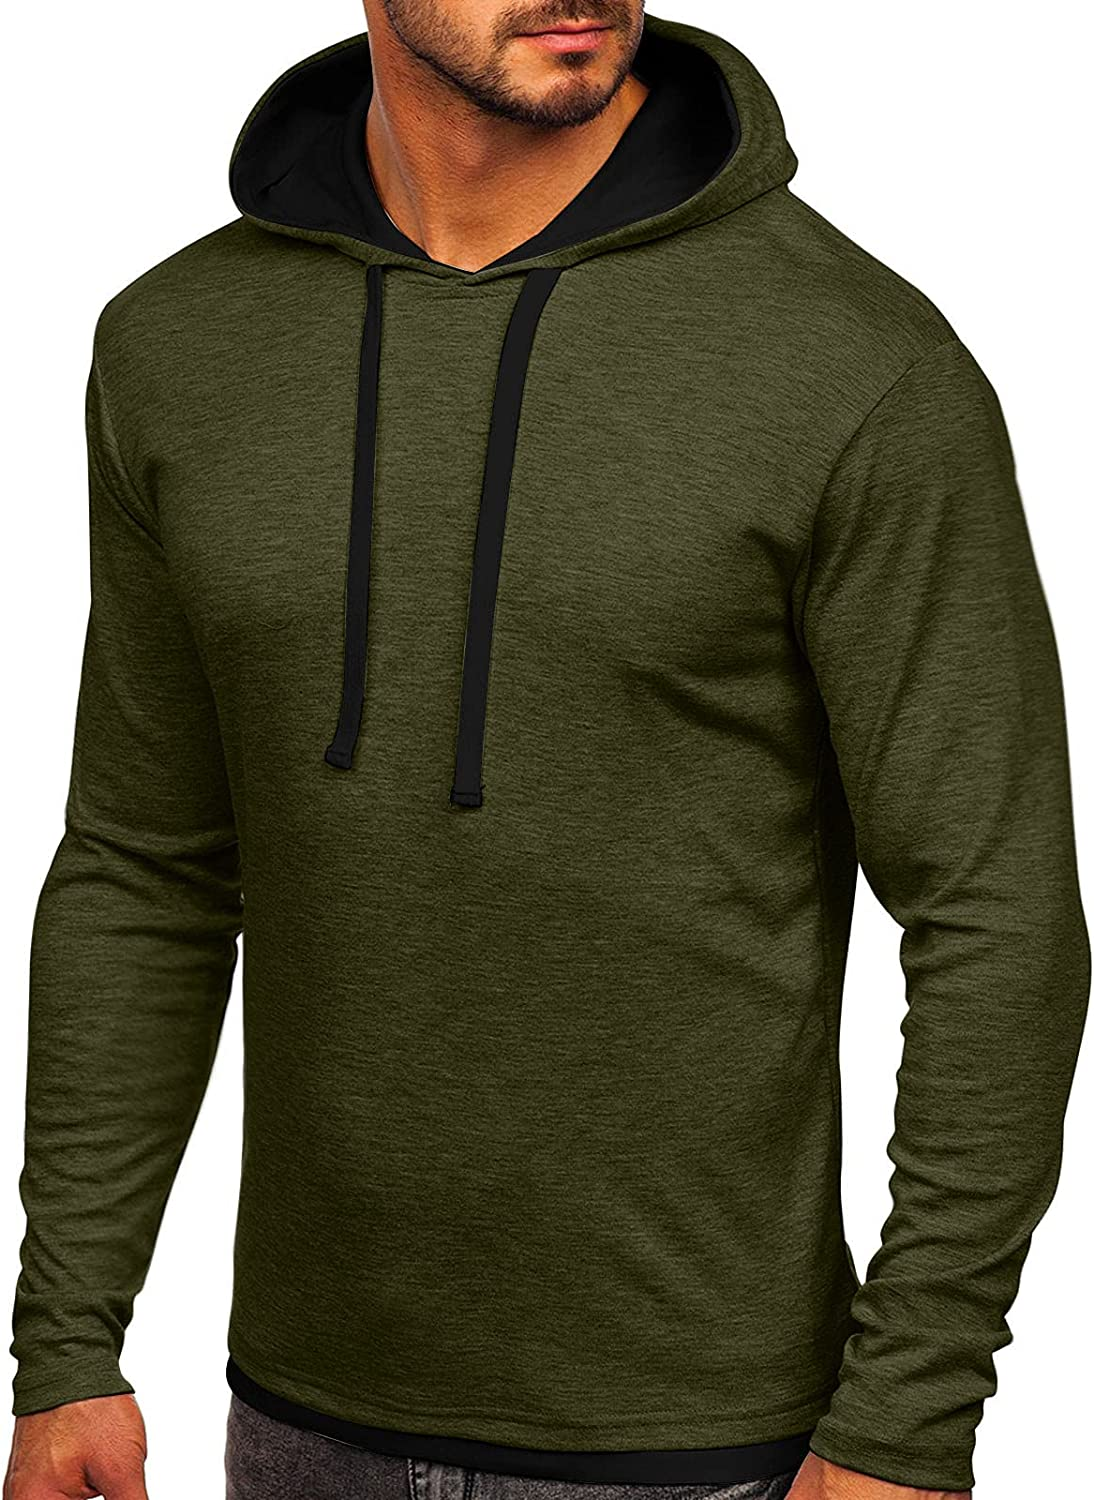 XXBR Hoodies for Mens, Fall Color Block Casual Long Sleeve Pullover Hipster Drawstring Slim Fit Hooded Sweatshirts